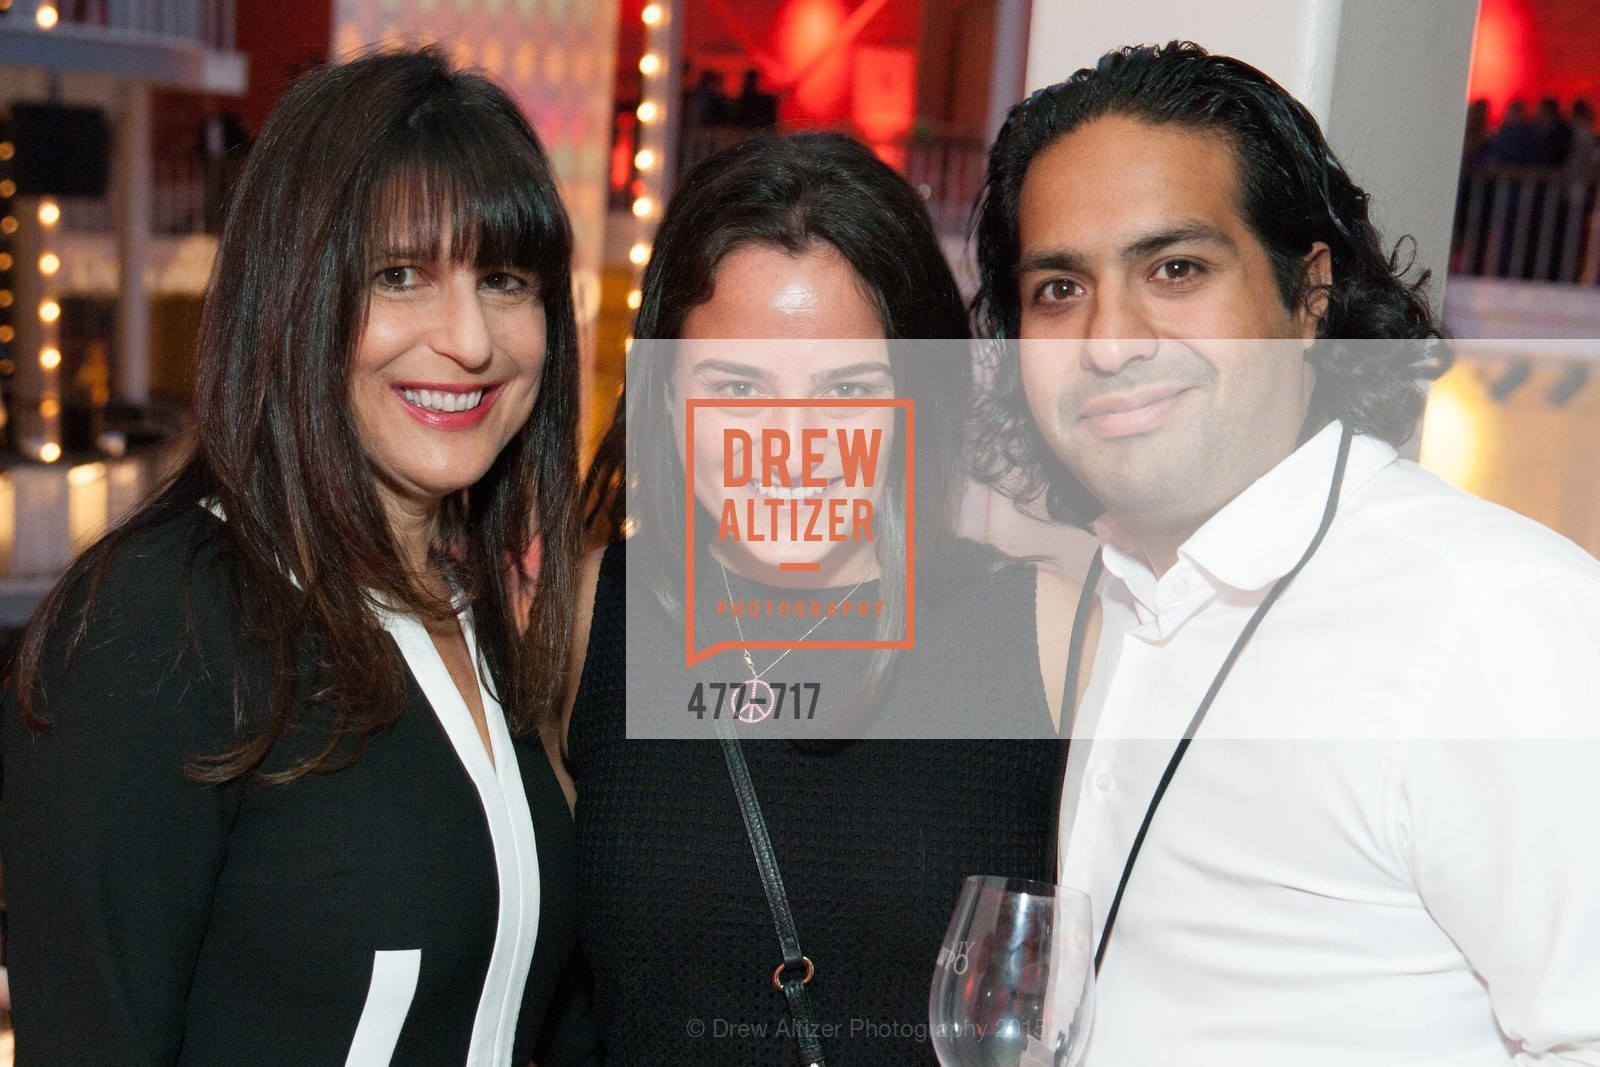 Laura Cohn, Marissa Siegal, Moez Kassam, YPO Wine Festival, US, May 12th, 2015,Drew Altizer, Drew Altizer Photography, full-service agency, private events, San Francisco photographer, photographer california